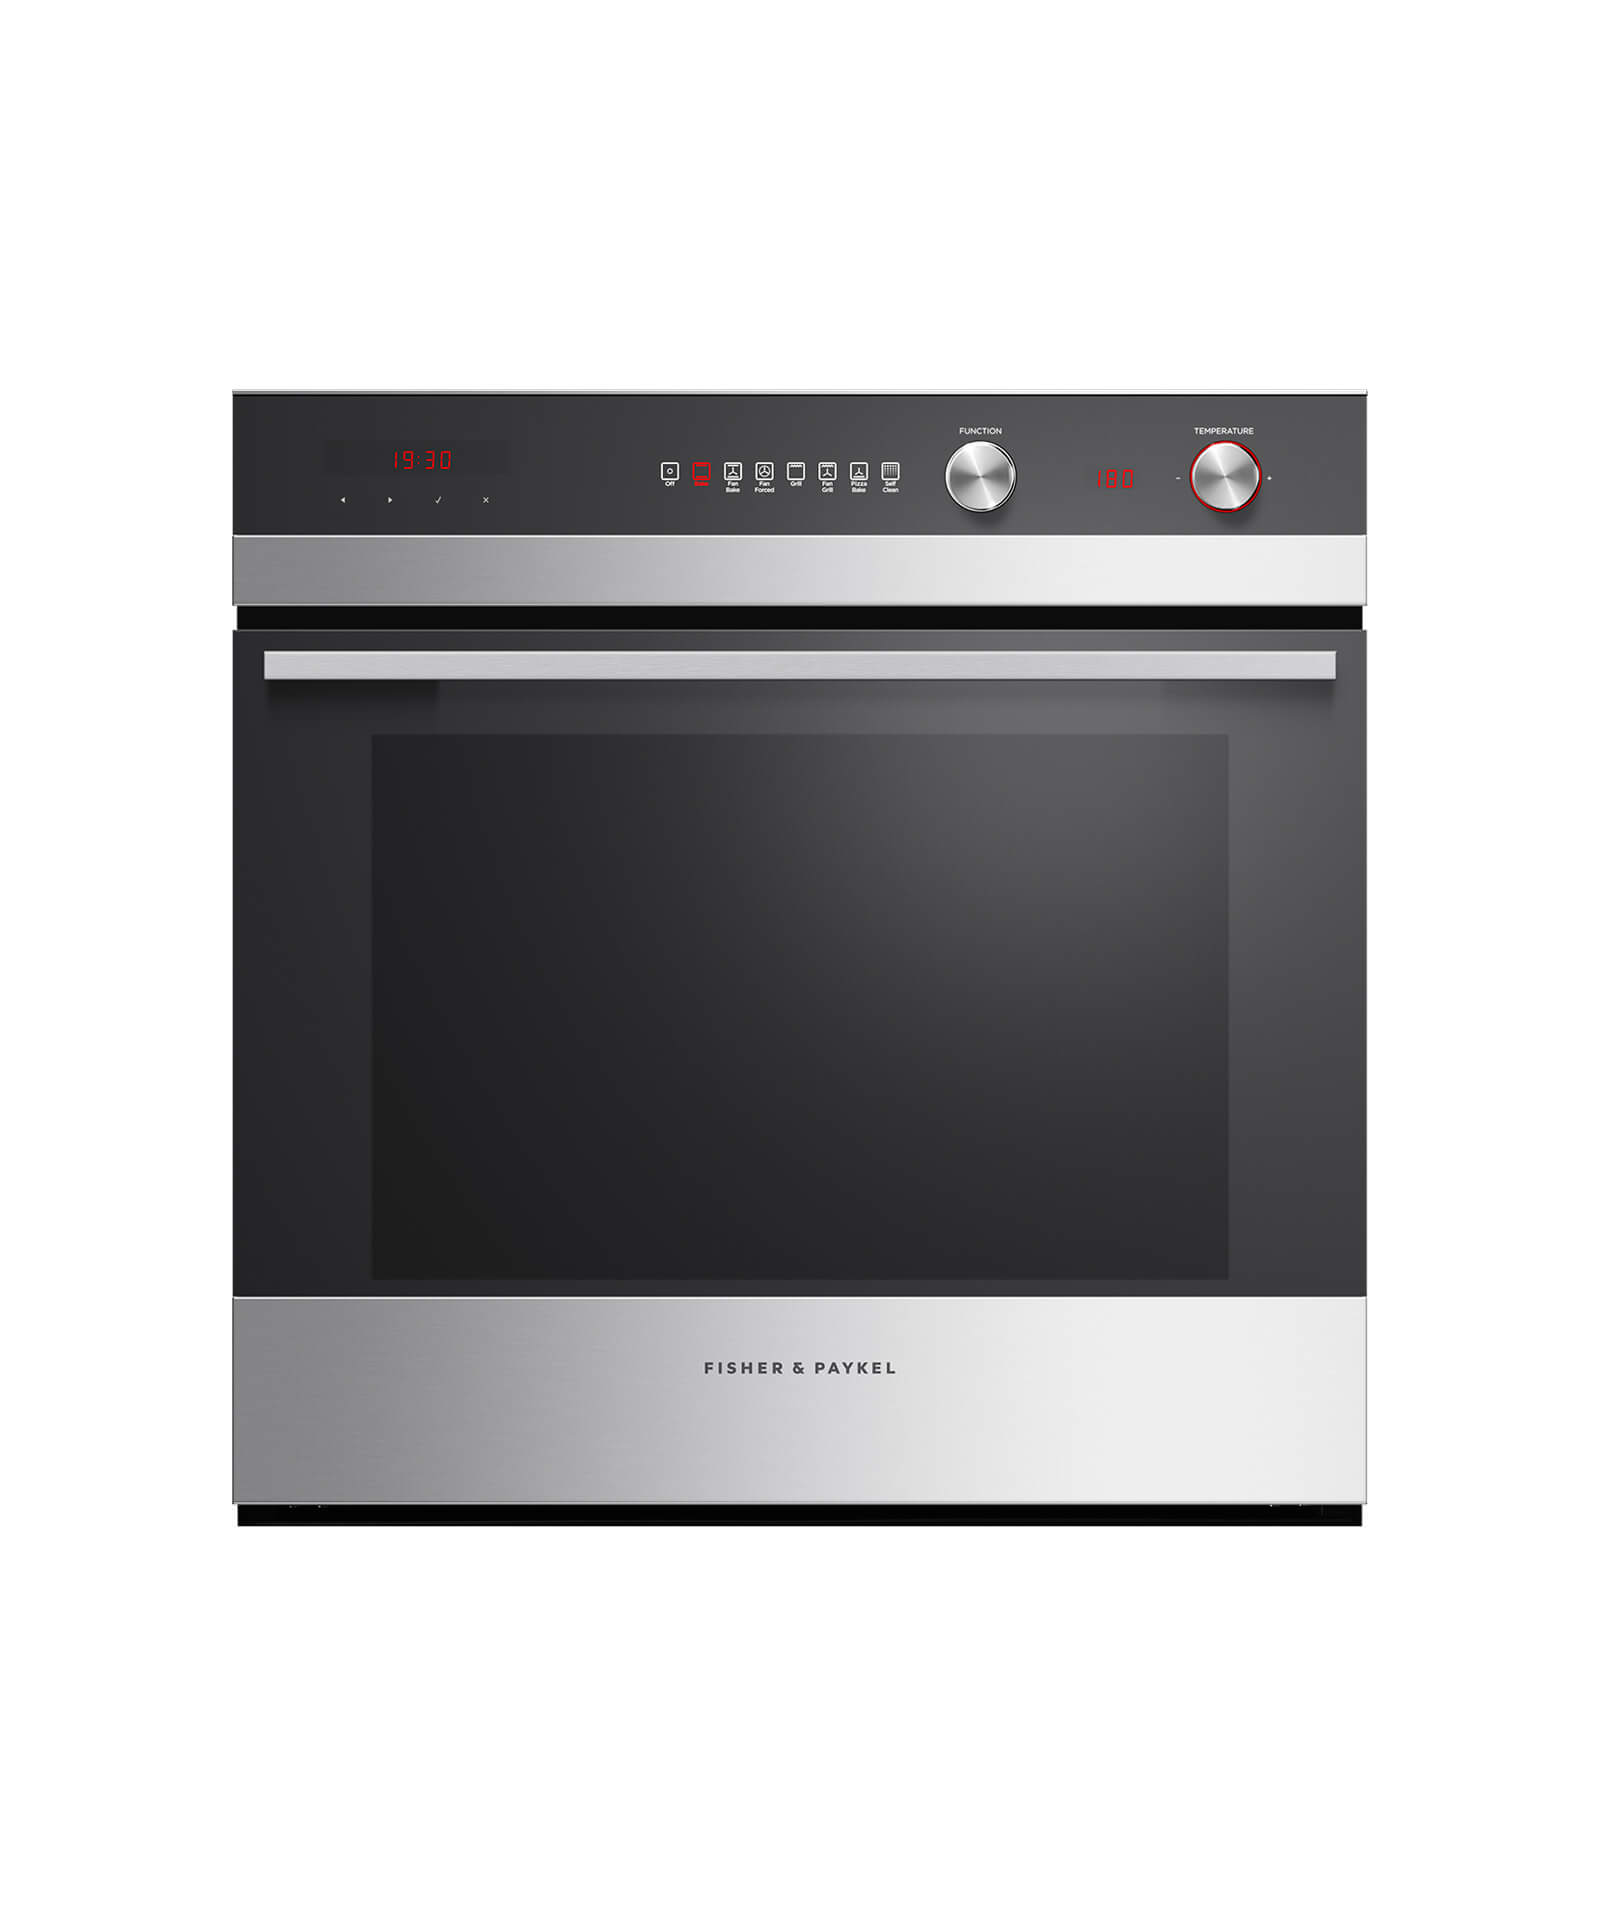 OB60SC7CEPX2 - 60cm 7 Function Pyrolytic Built-in Oven - 85L - 81741